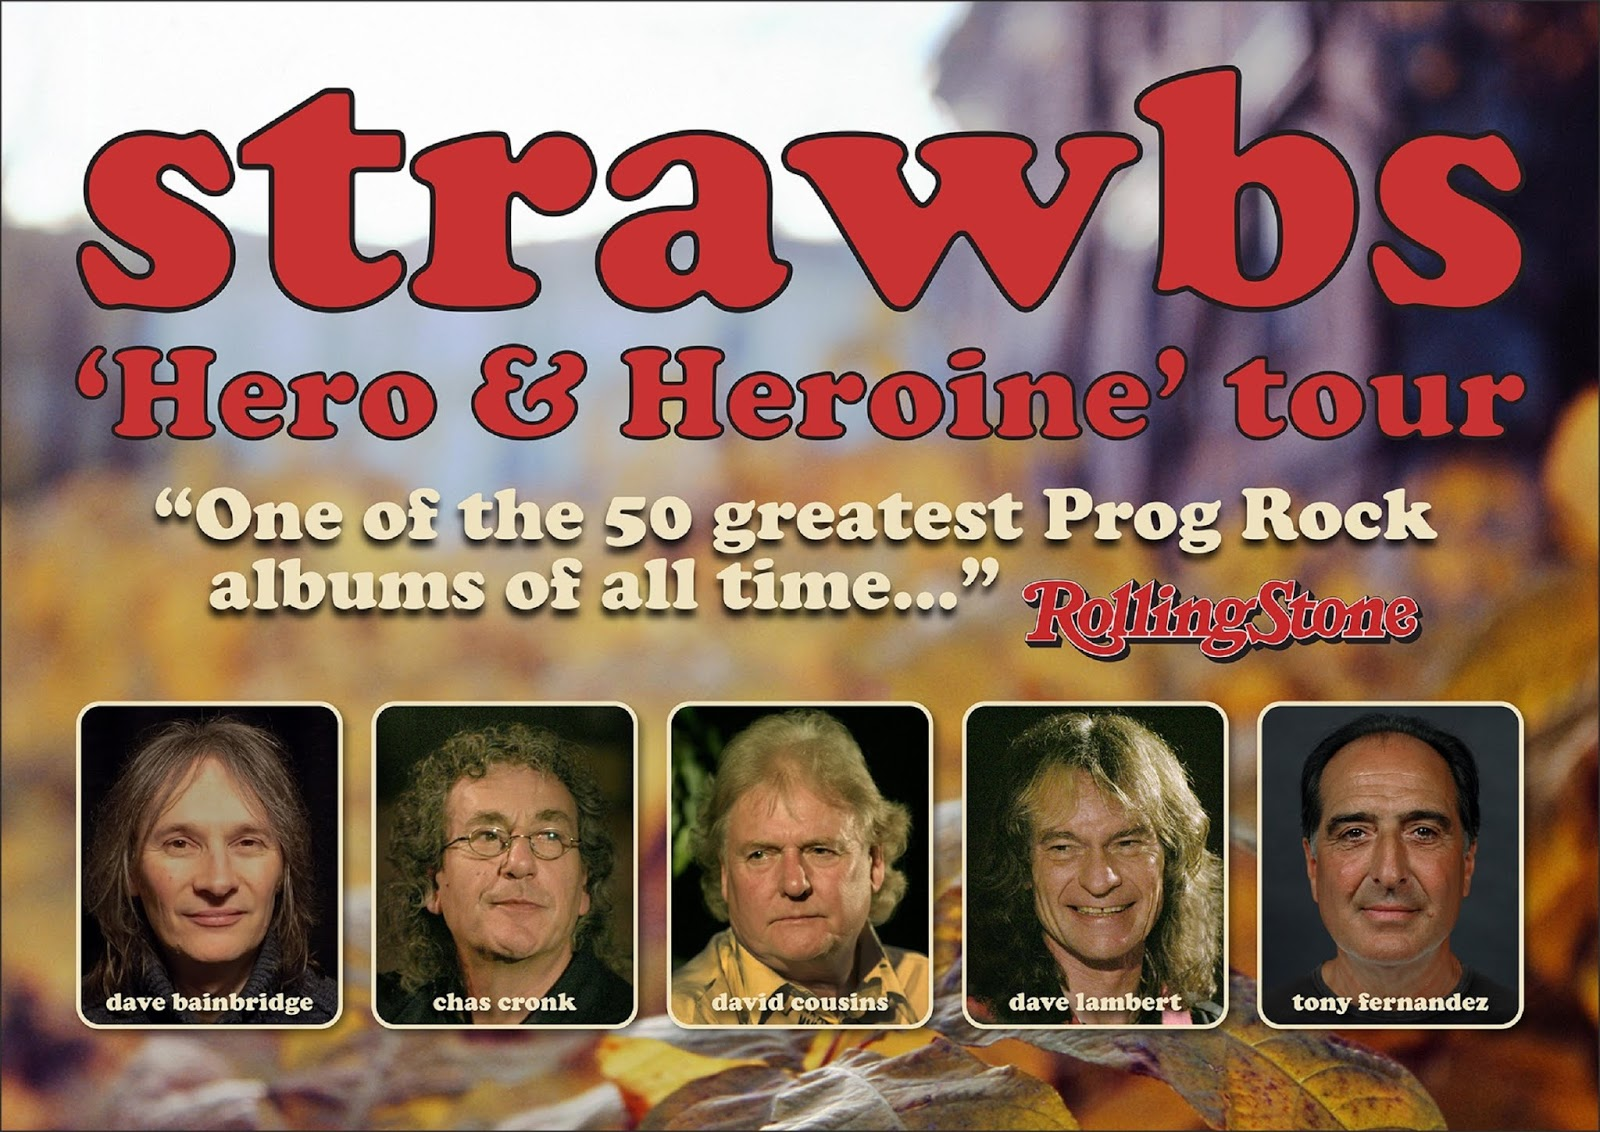 Classic Rock Here And Now: DAVID COUSINS & THE STRAWBS CELEBRATE 50